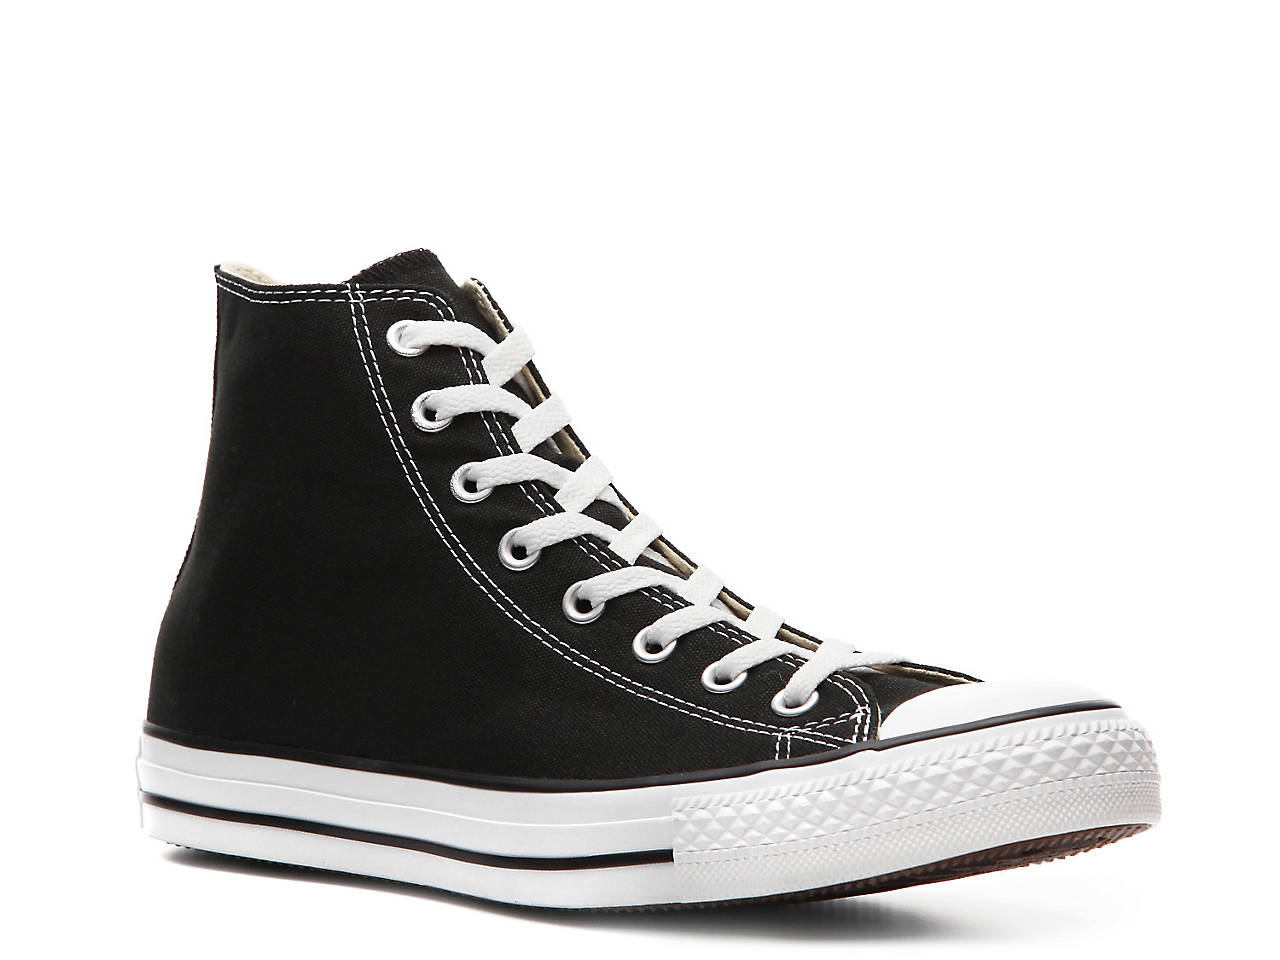 4954ce348986 Converse Chuck Taylor All Star High-Top Sneaker - Men s Men s Shoes ...